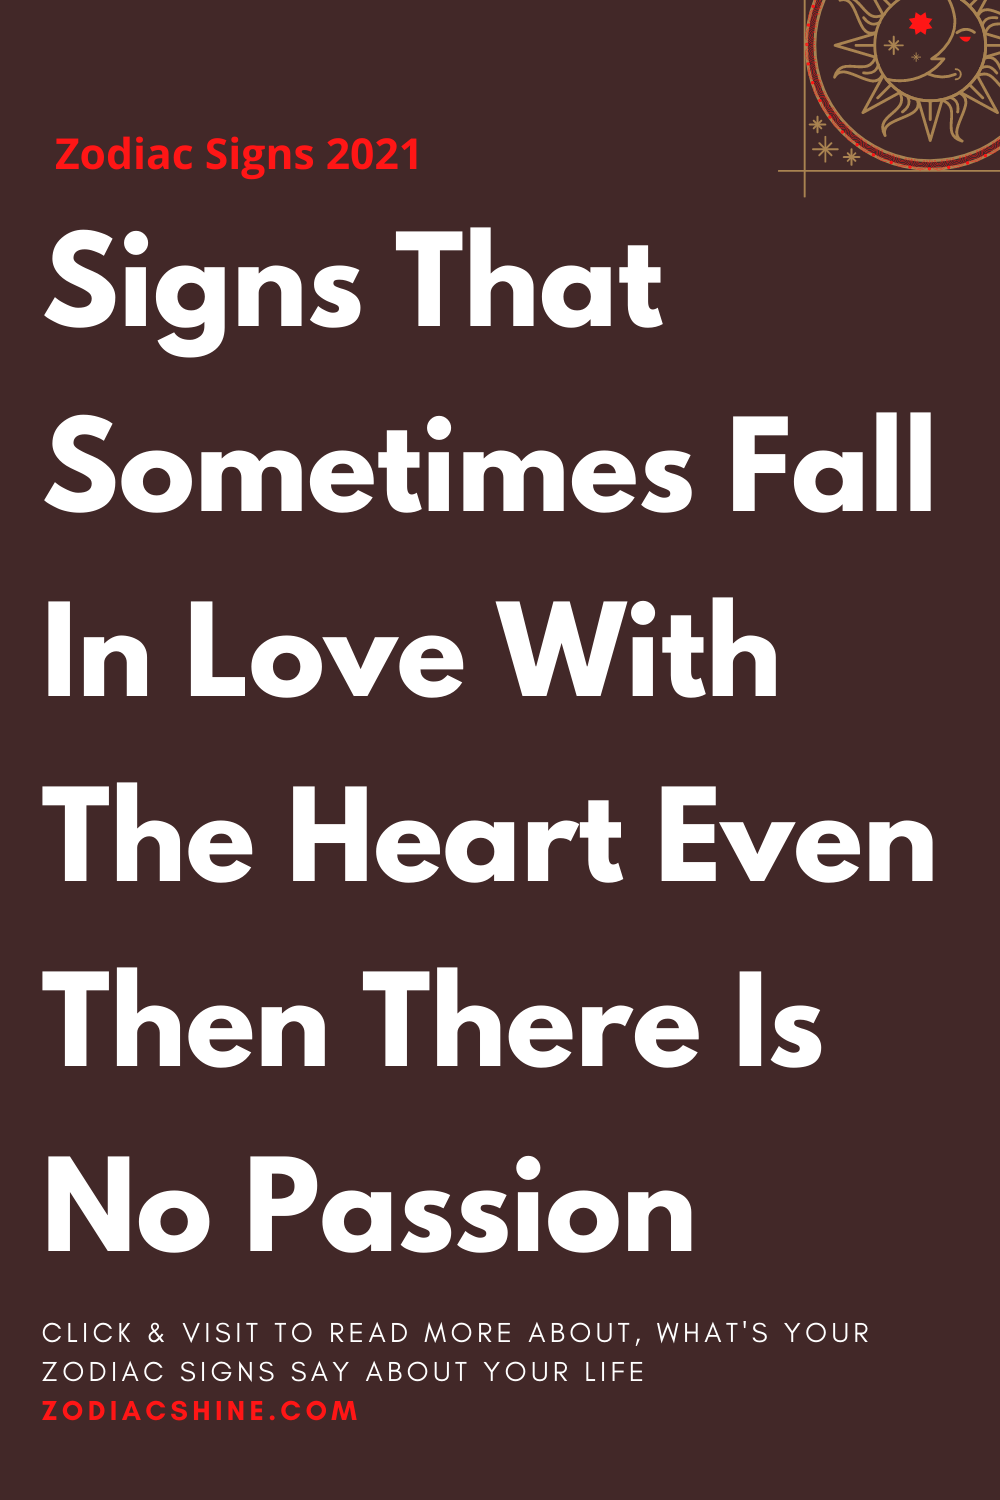 Signs That Sometimes Fall In Love With The Heart Even Then There Is No Passion